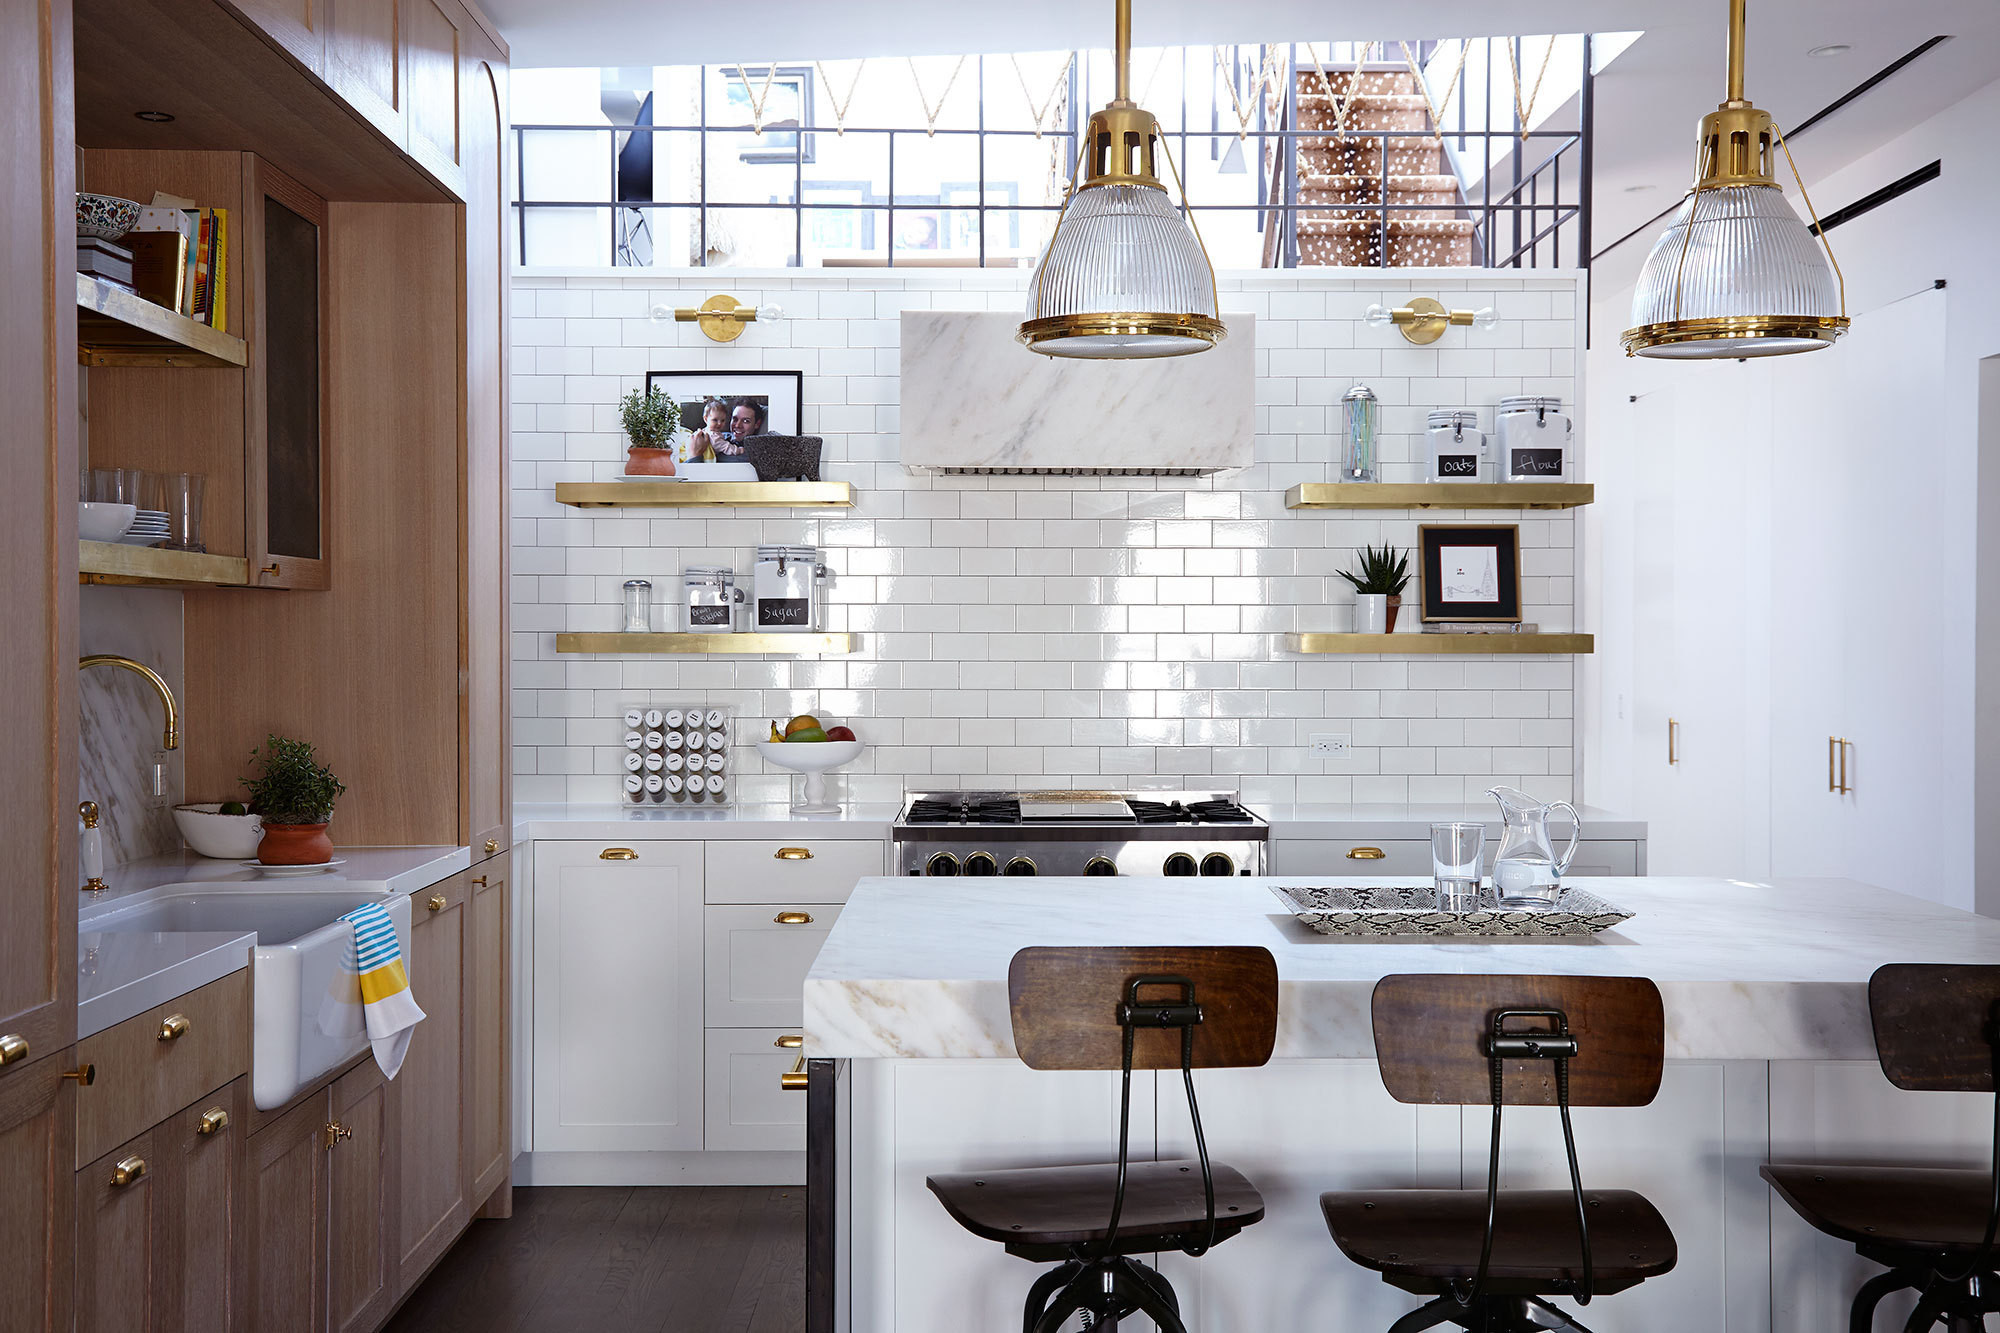 kitchen walls gift baskets say goodbye to your backsplash tiled are trending the sunken of a tribeca home by jenny vorhoff